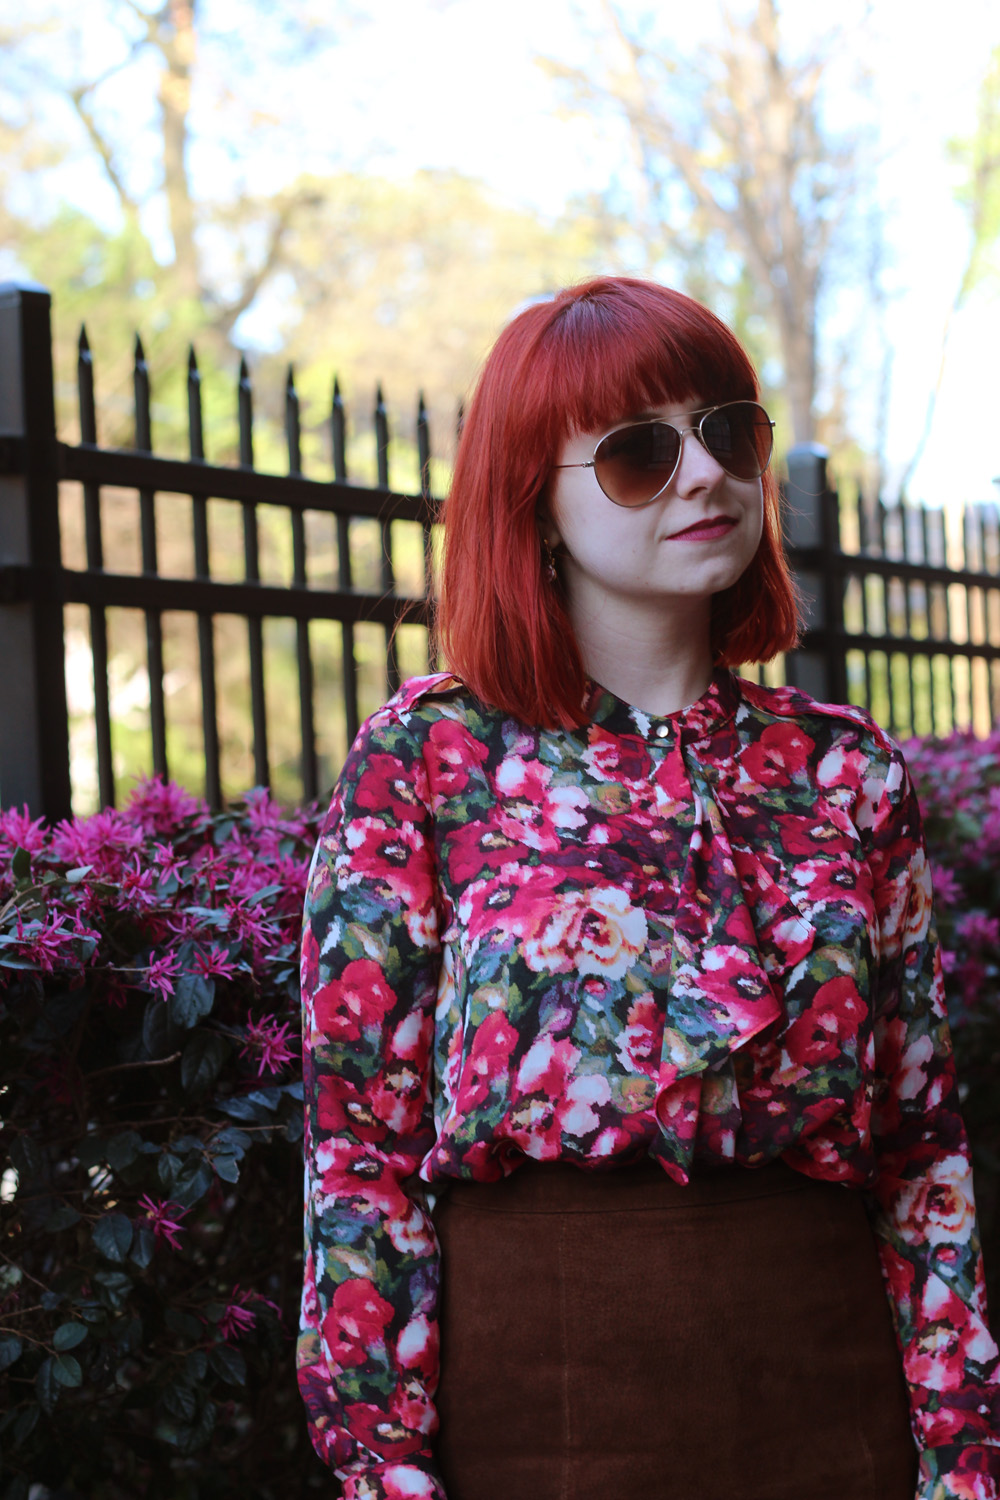 Digital Floral Print Top with Ruffles, Red Hair, and Gold Rimmed Aviator Sunglasses